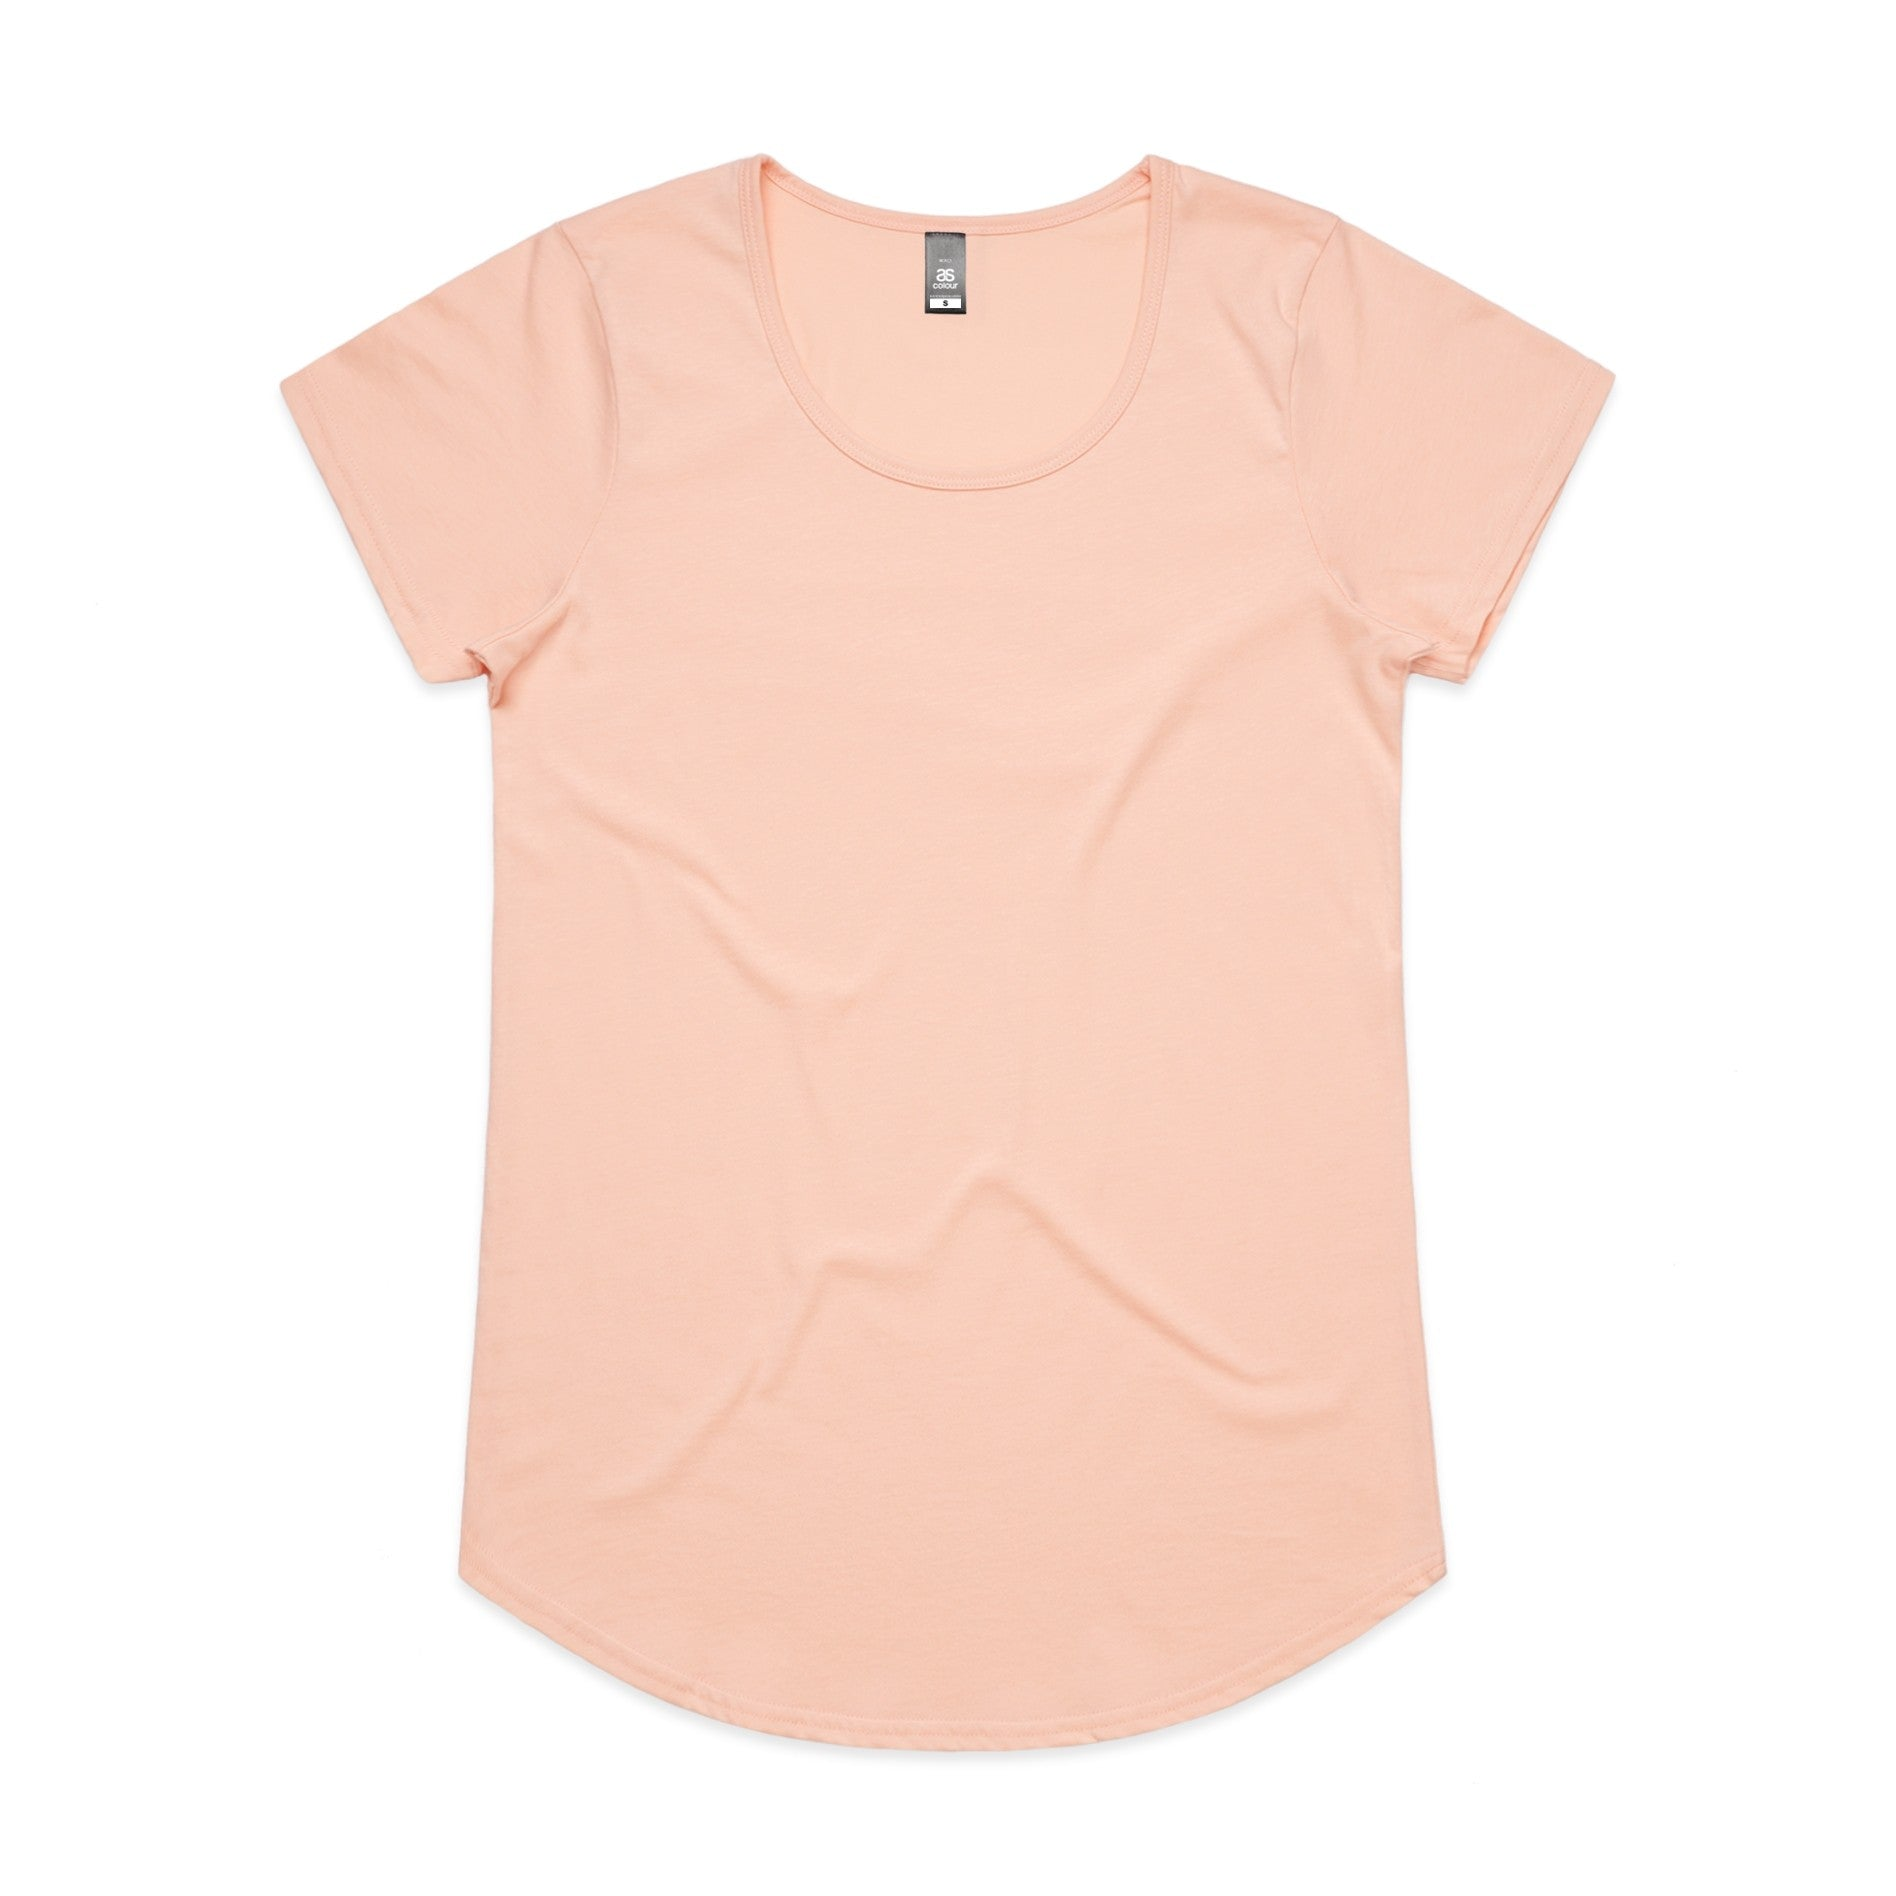 AS Colour Mali Tee